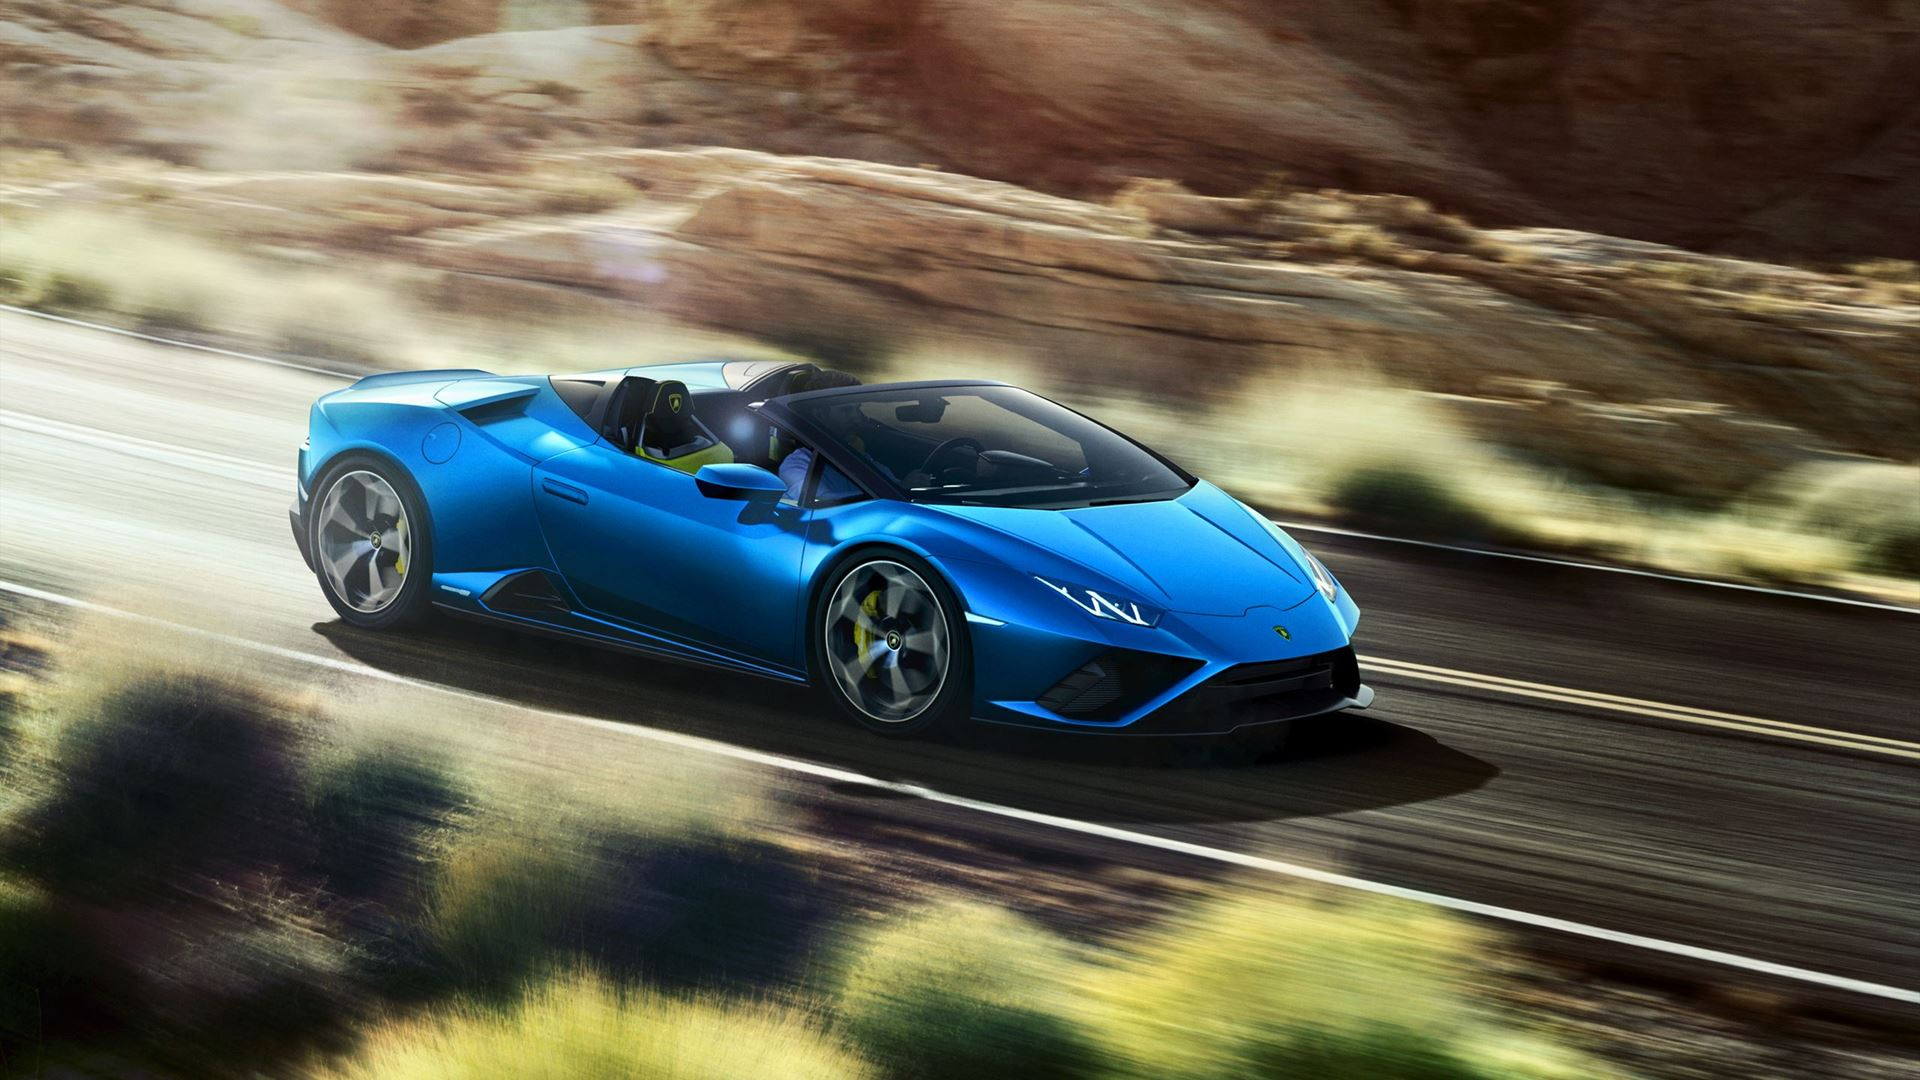 Automobili Lamborghini closes 2020 with 7,430 cars delivered and six new product launches - Image 3